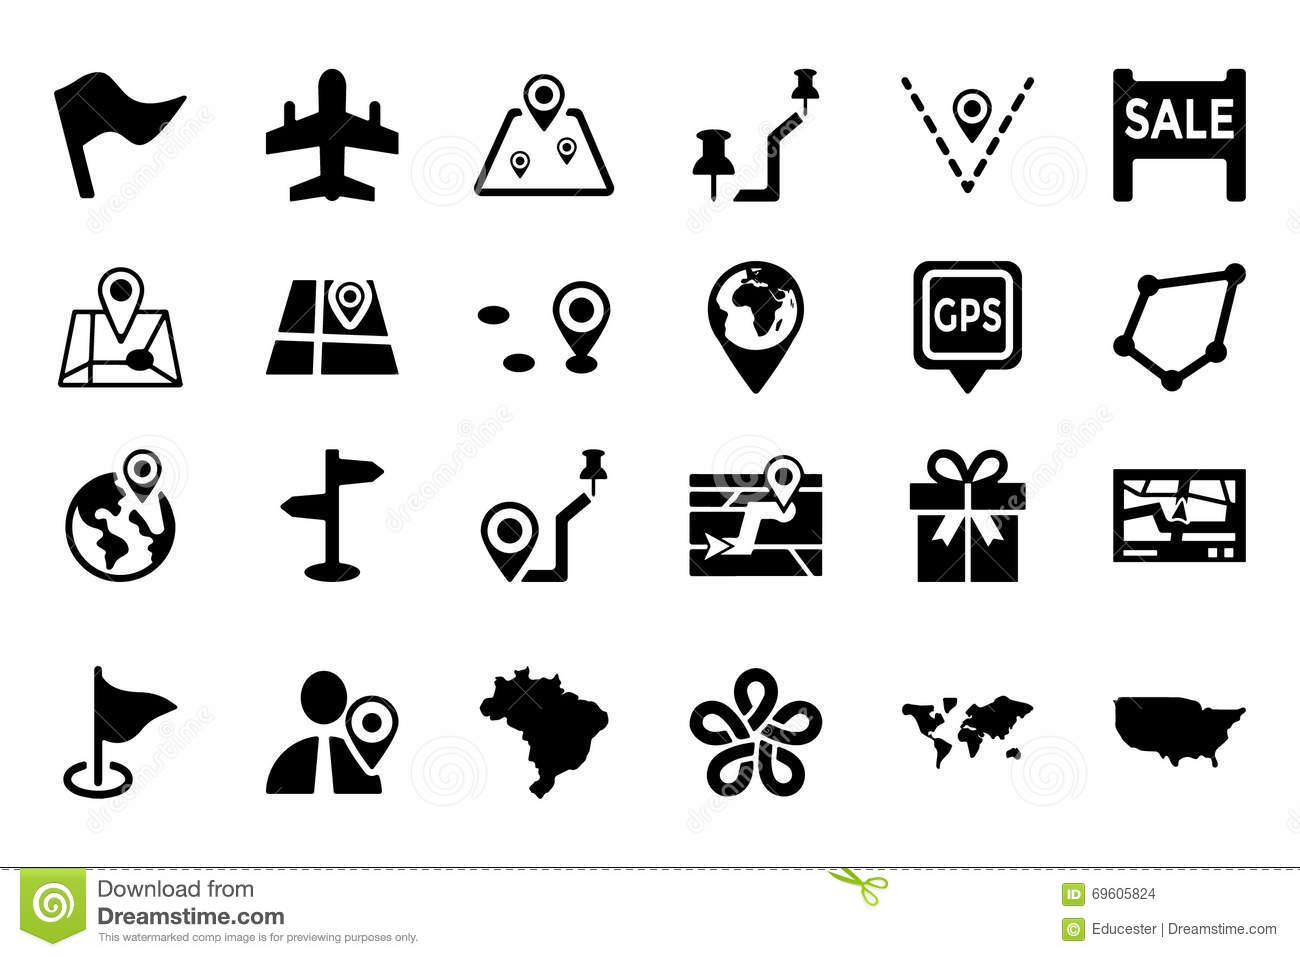 Maps And Navigation Vector Icons 5 Stock Illustration ...